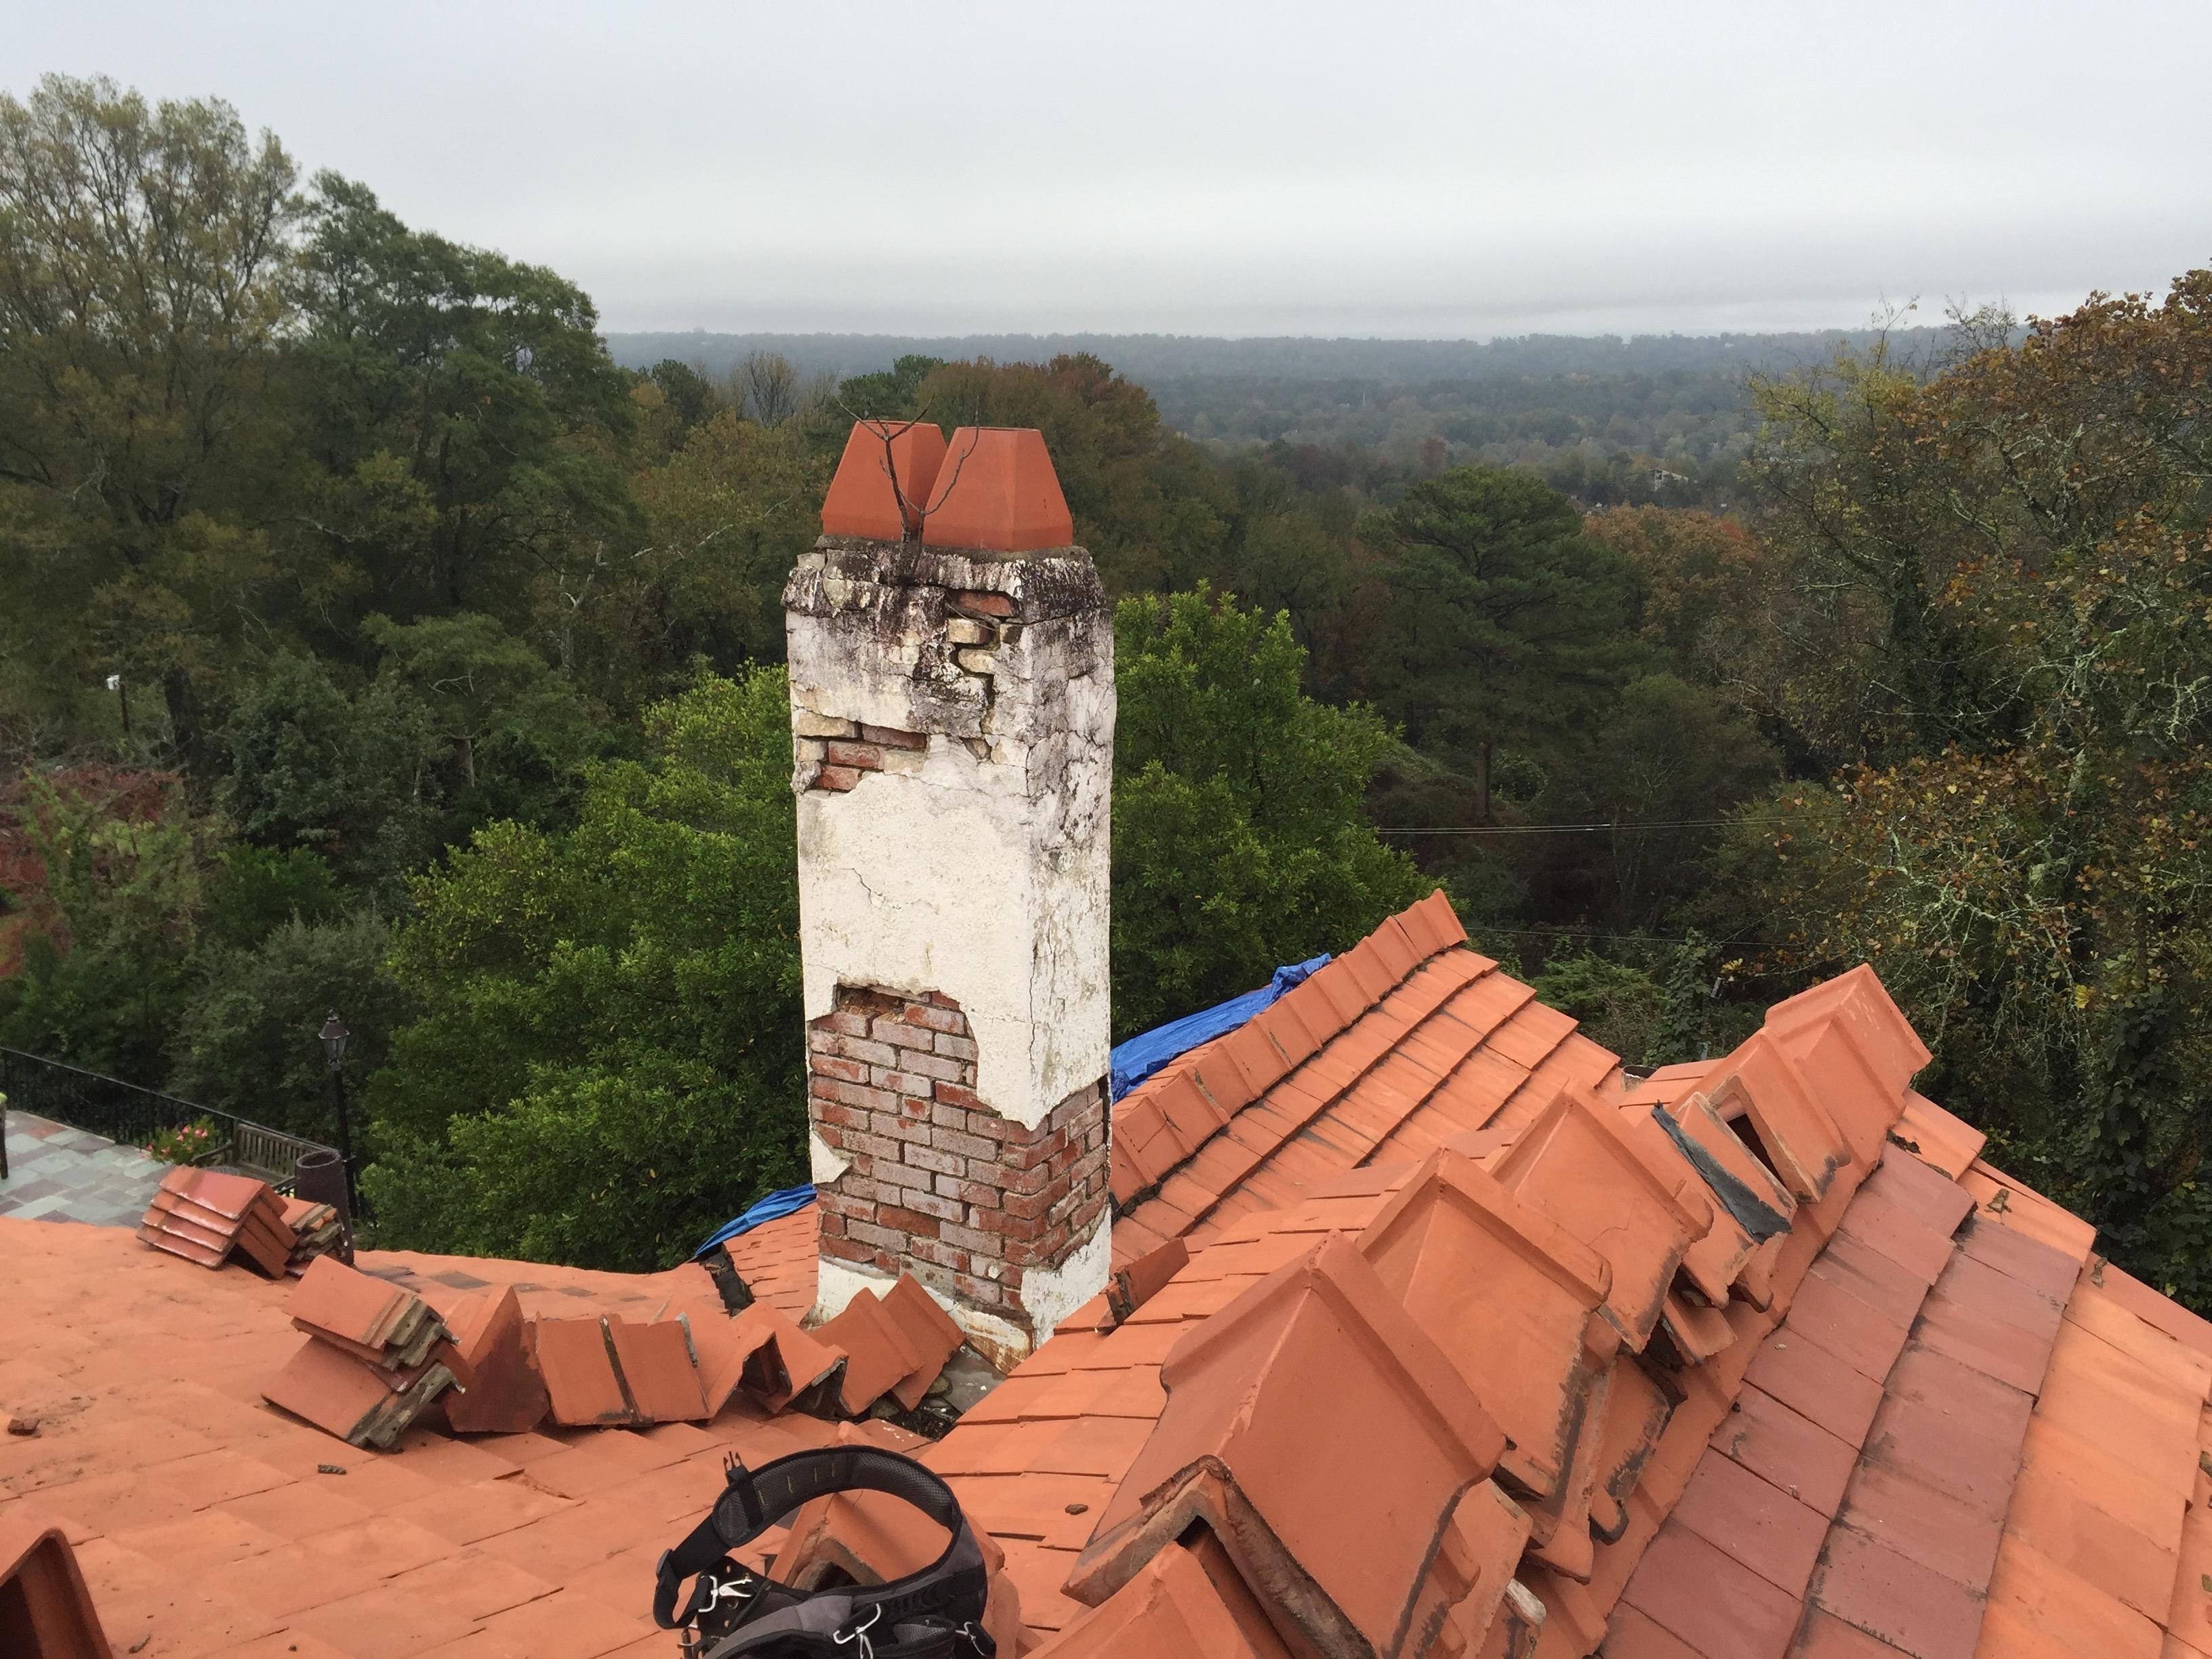 Capstone Roofing removing an old clay roof to repair chimney and install new clay tile in Birmingham, Alabama.